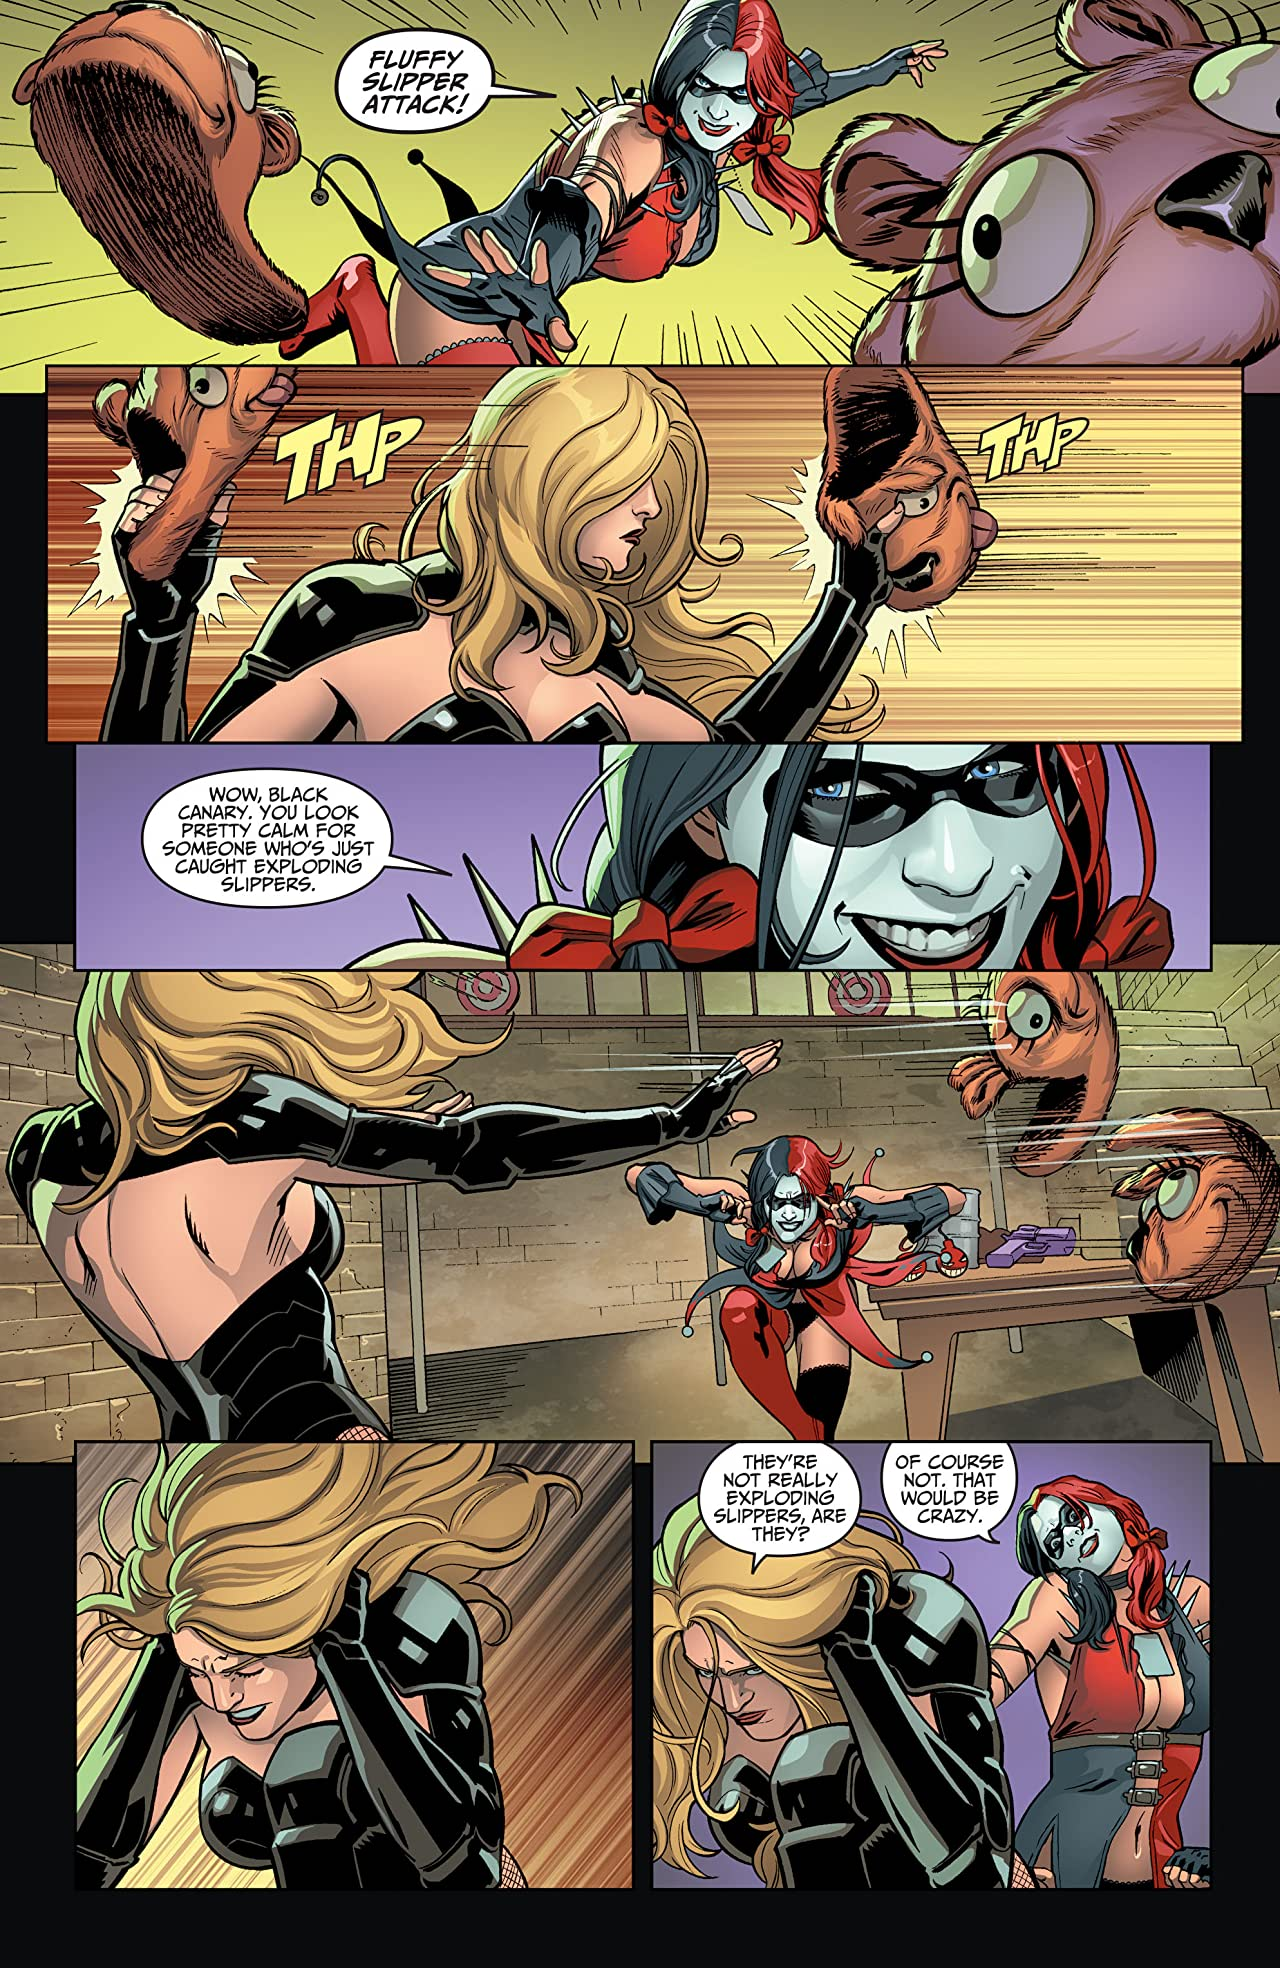 Injustice: Gods Among Us: Year Two (2014) Vol. 2